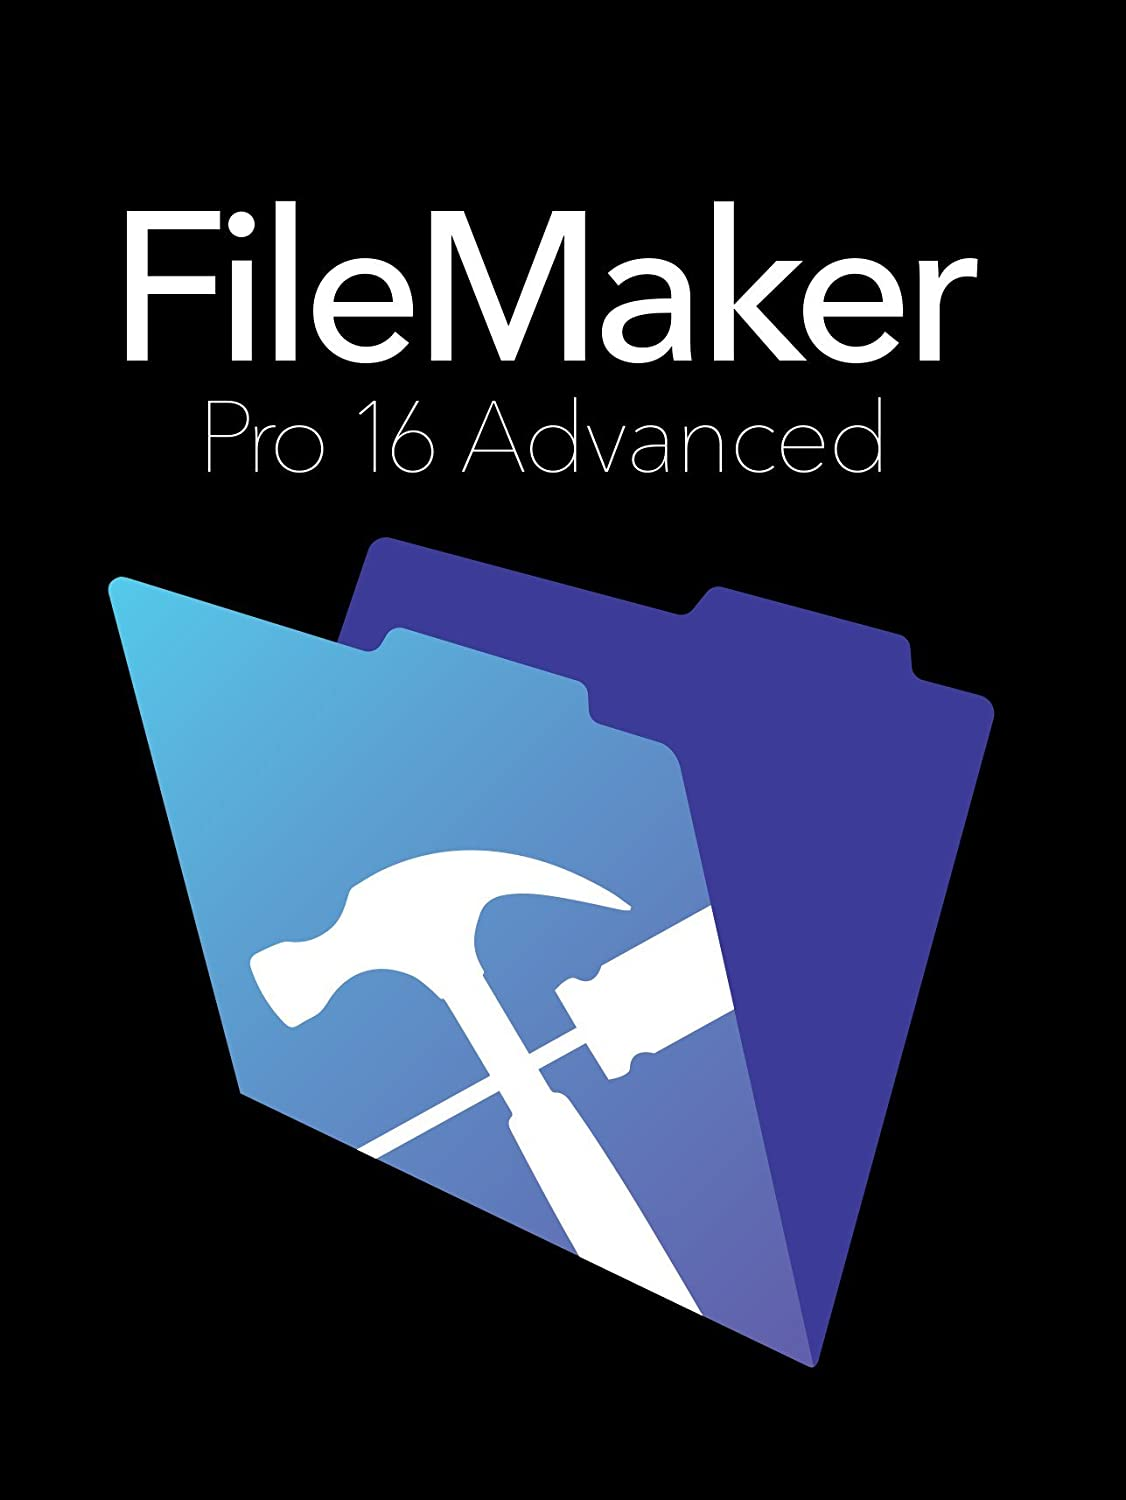 FileMaker Pro 16 Advanced Education Mac/Win Retail Box V16